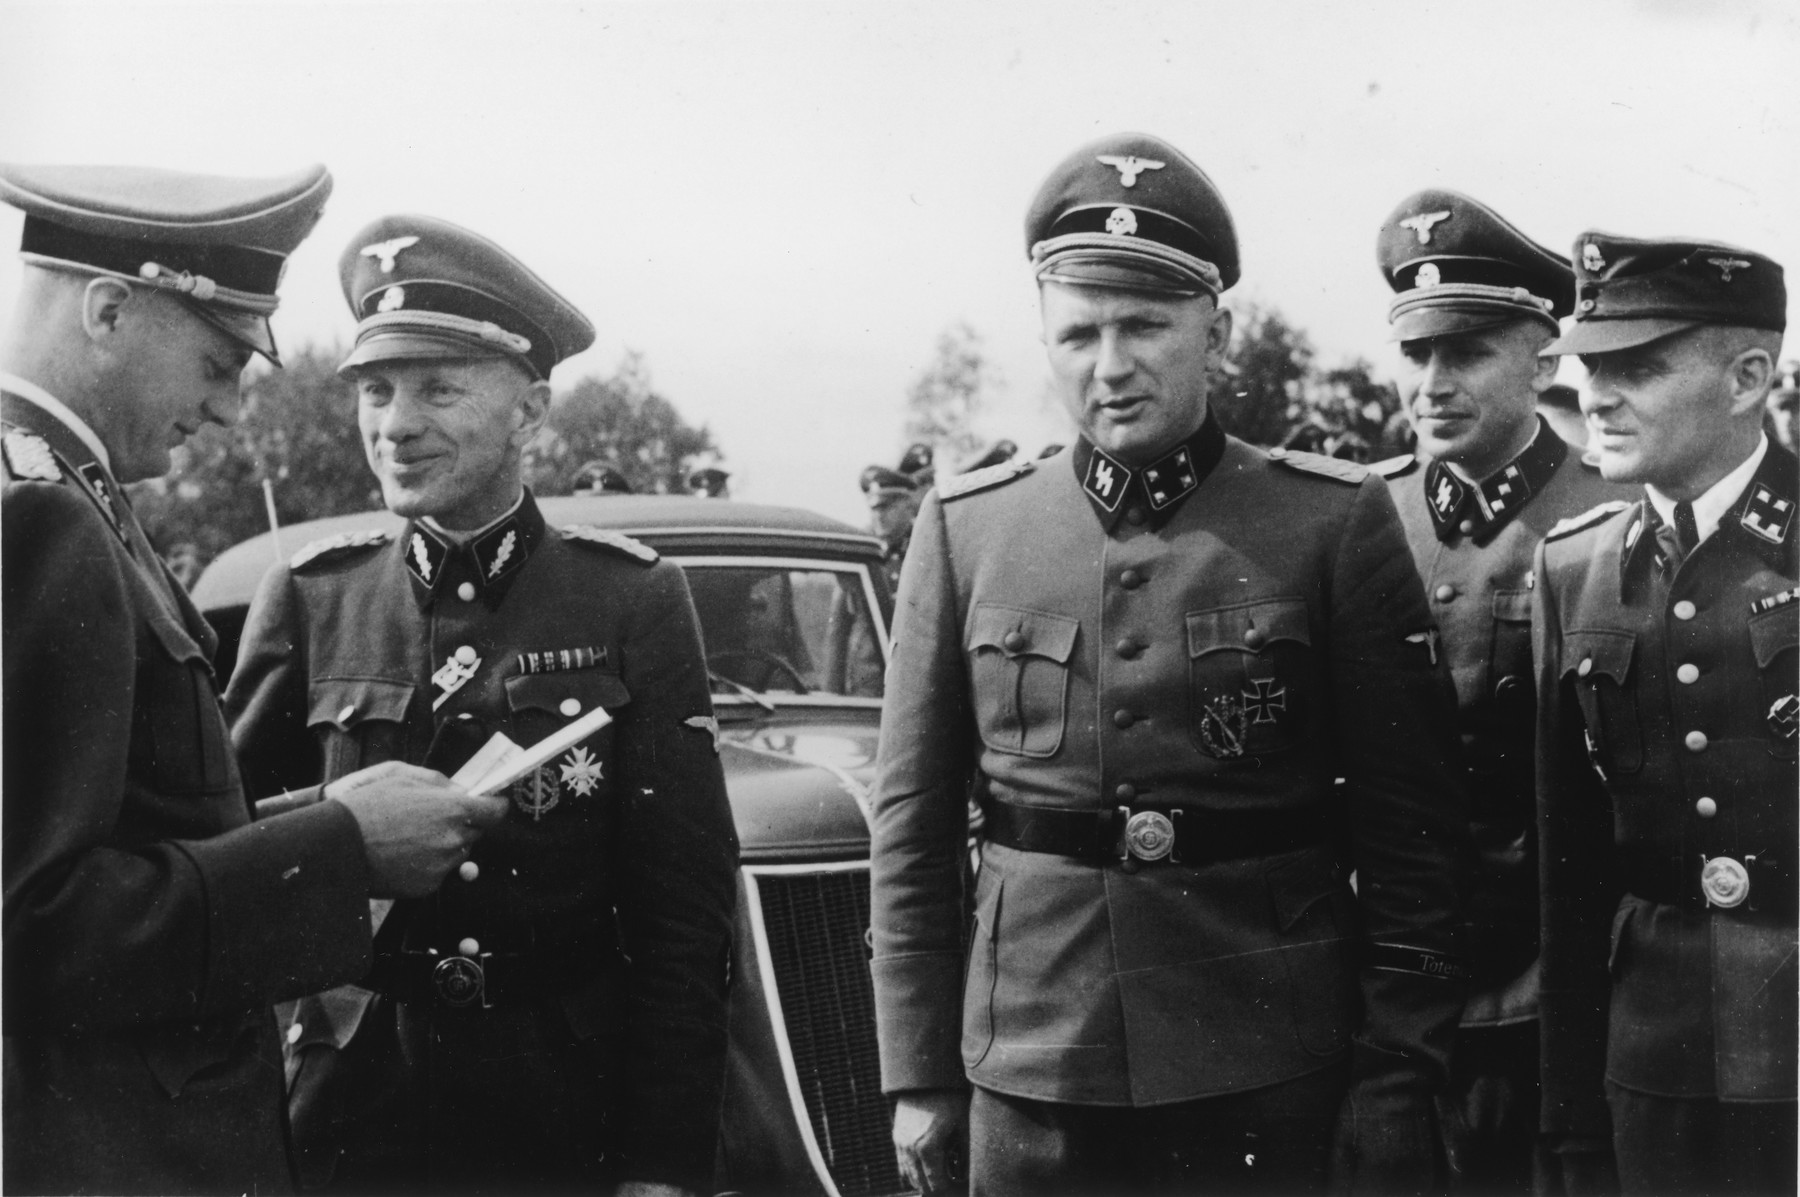 A group of SS officers gathers during the dedication of the new SS hospital.  Pictured left to right are Dr. Eduard Wirths, Dr. Enno Lolling, Commandant Richard Baer, Adjutant Karl Hoecker and former Commandant Rudolf Hoess.   Dr. Wirths also received his promotion to Sturmbannfuehrer and decorated with the War Service Cross 1st Class at the same time and this might be what is being portrayed here.